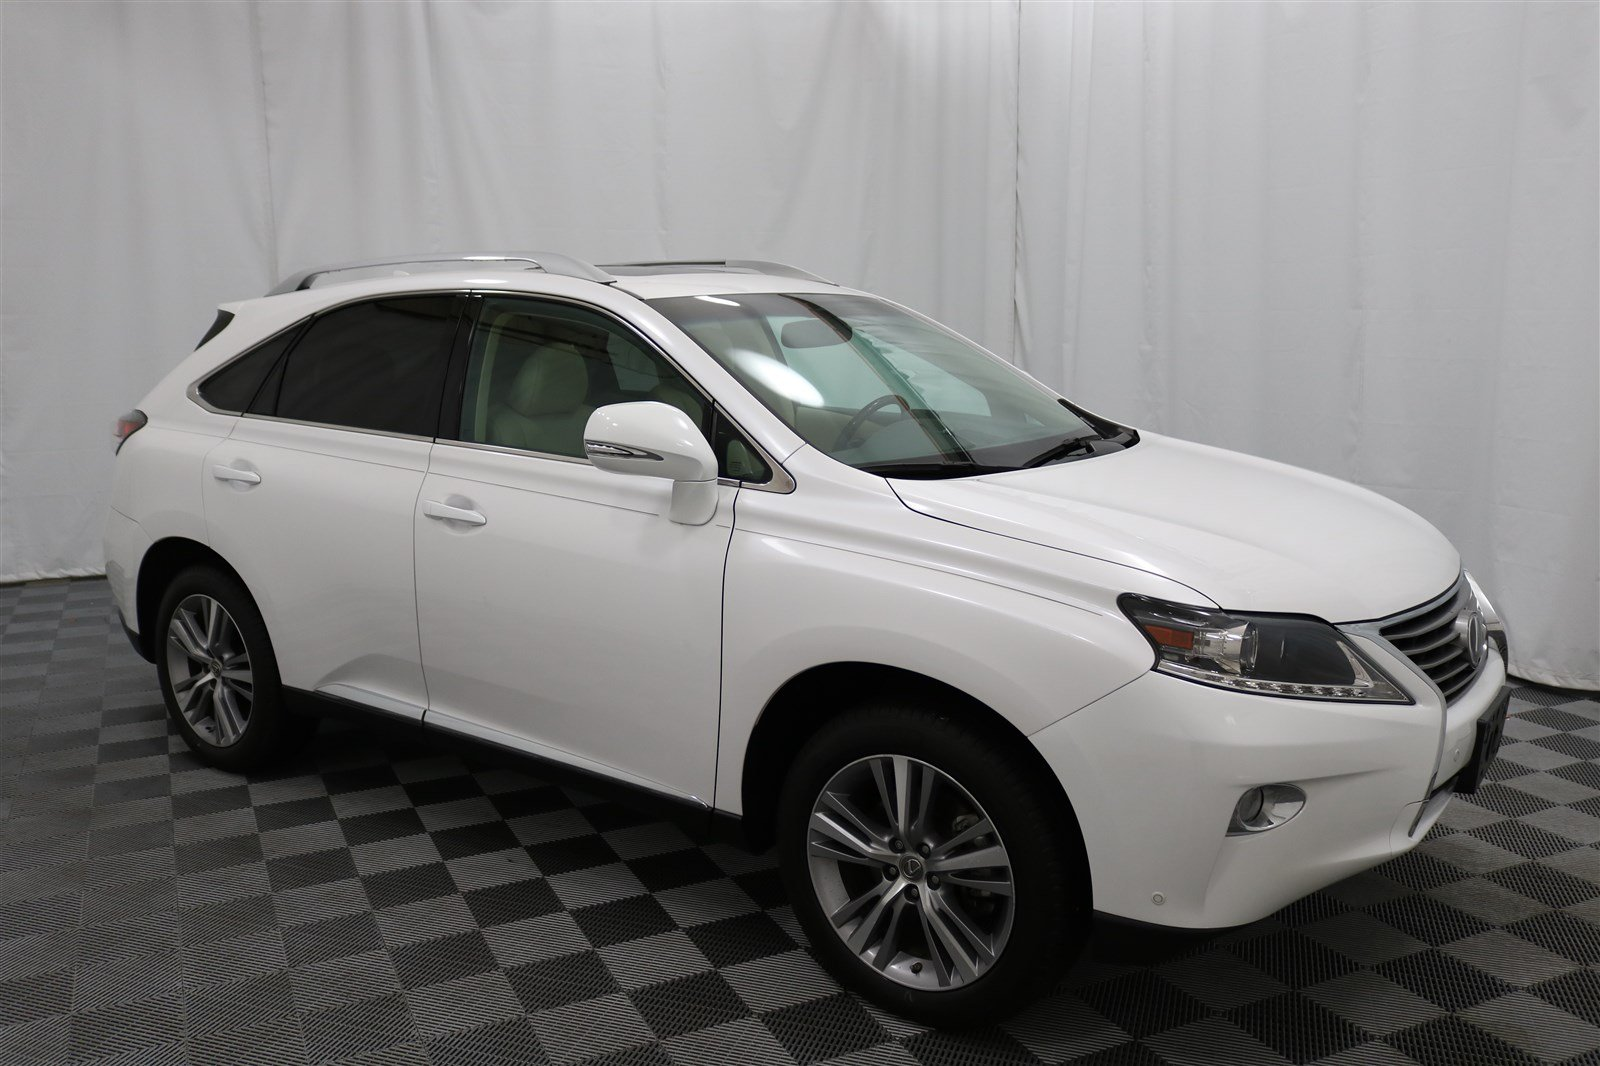 in car jackson jersey ny long sale queens lexus base available for used connecticut new island heights rx